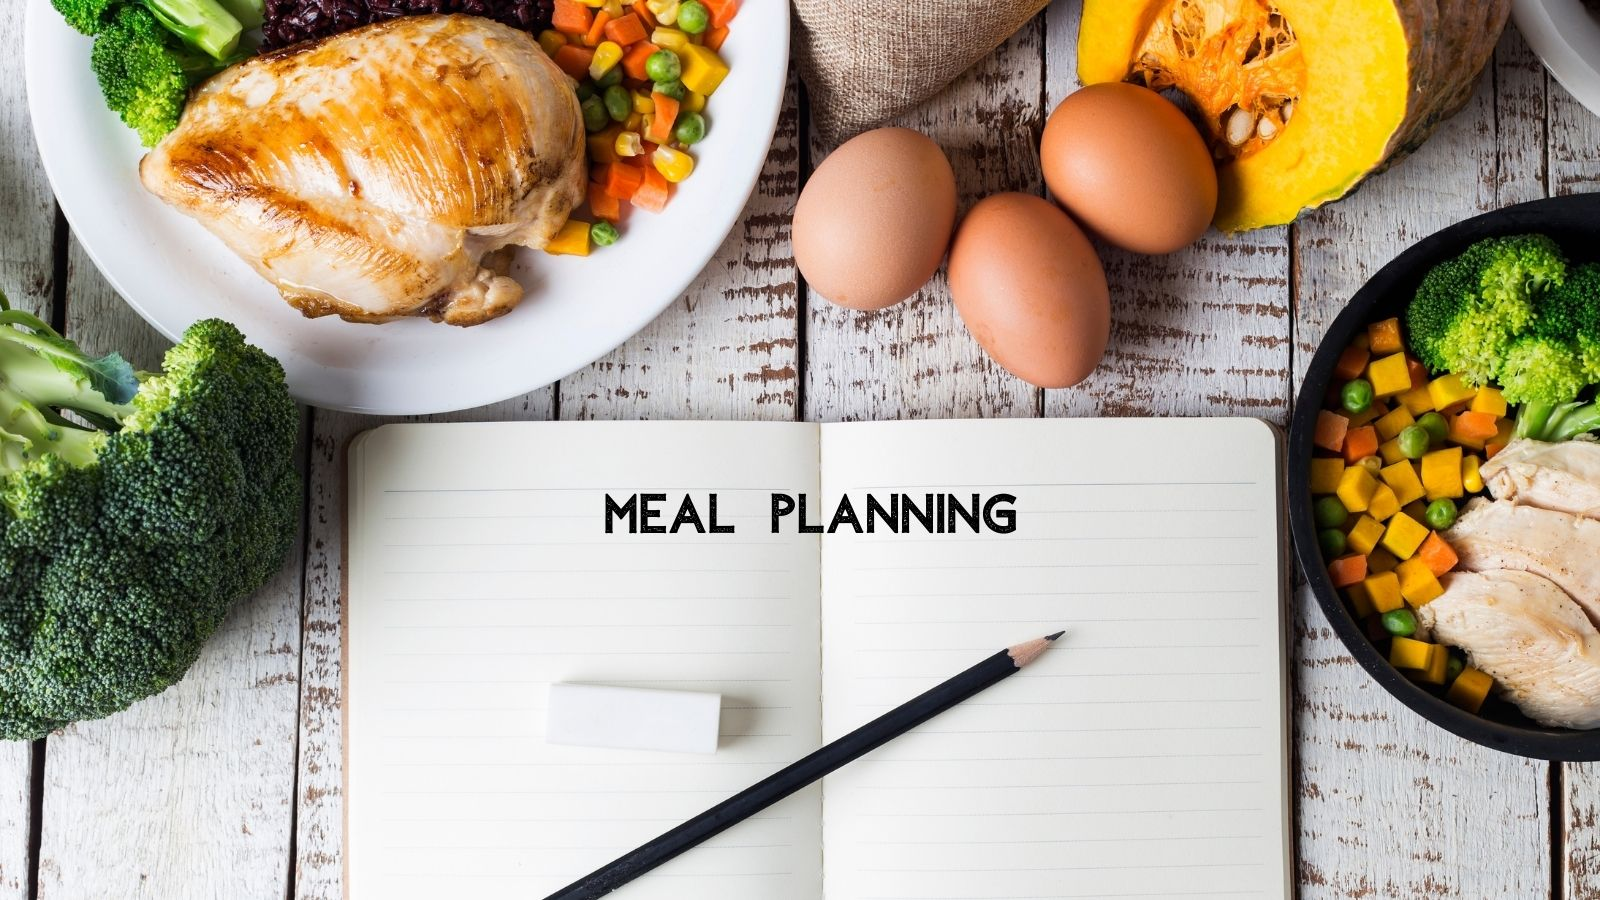 image of meal plan